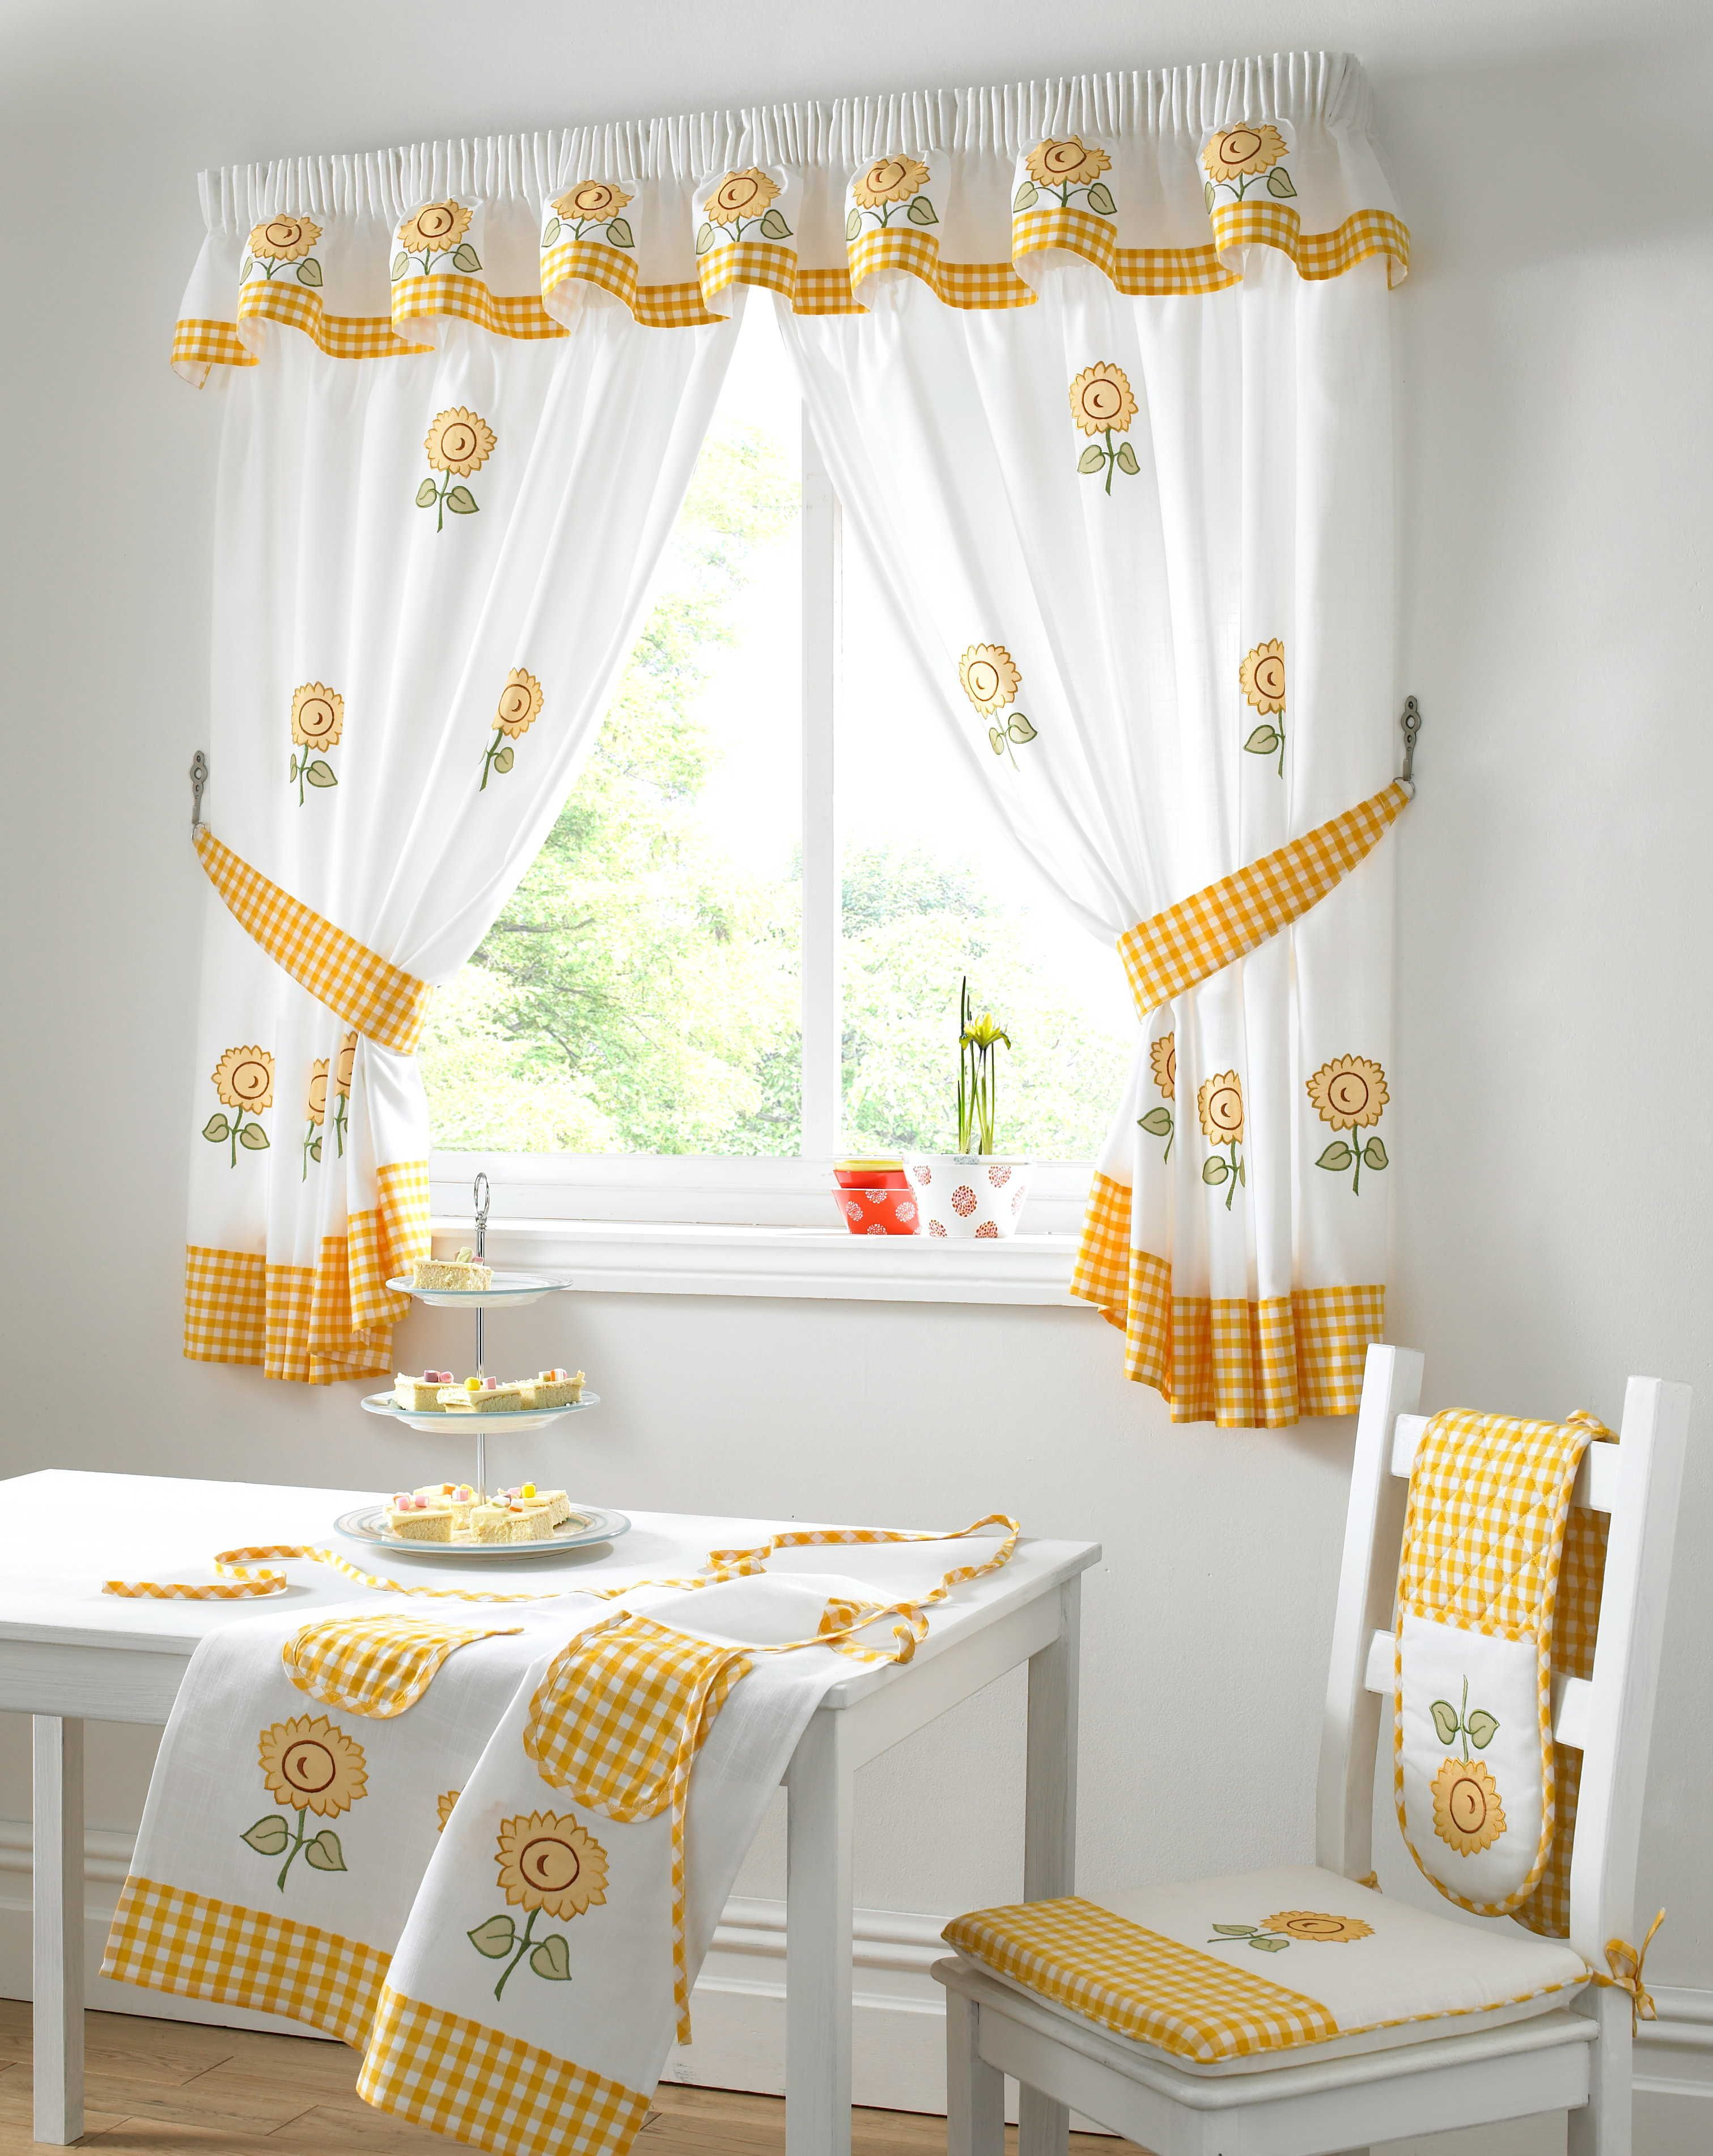 How to Choose Curtains for Small Windows Kitchen curtain